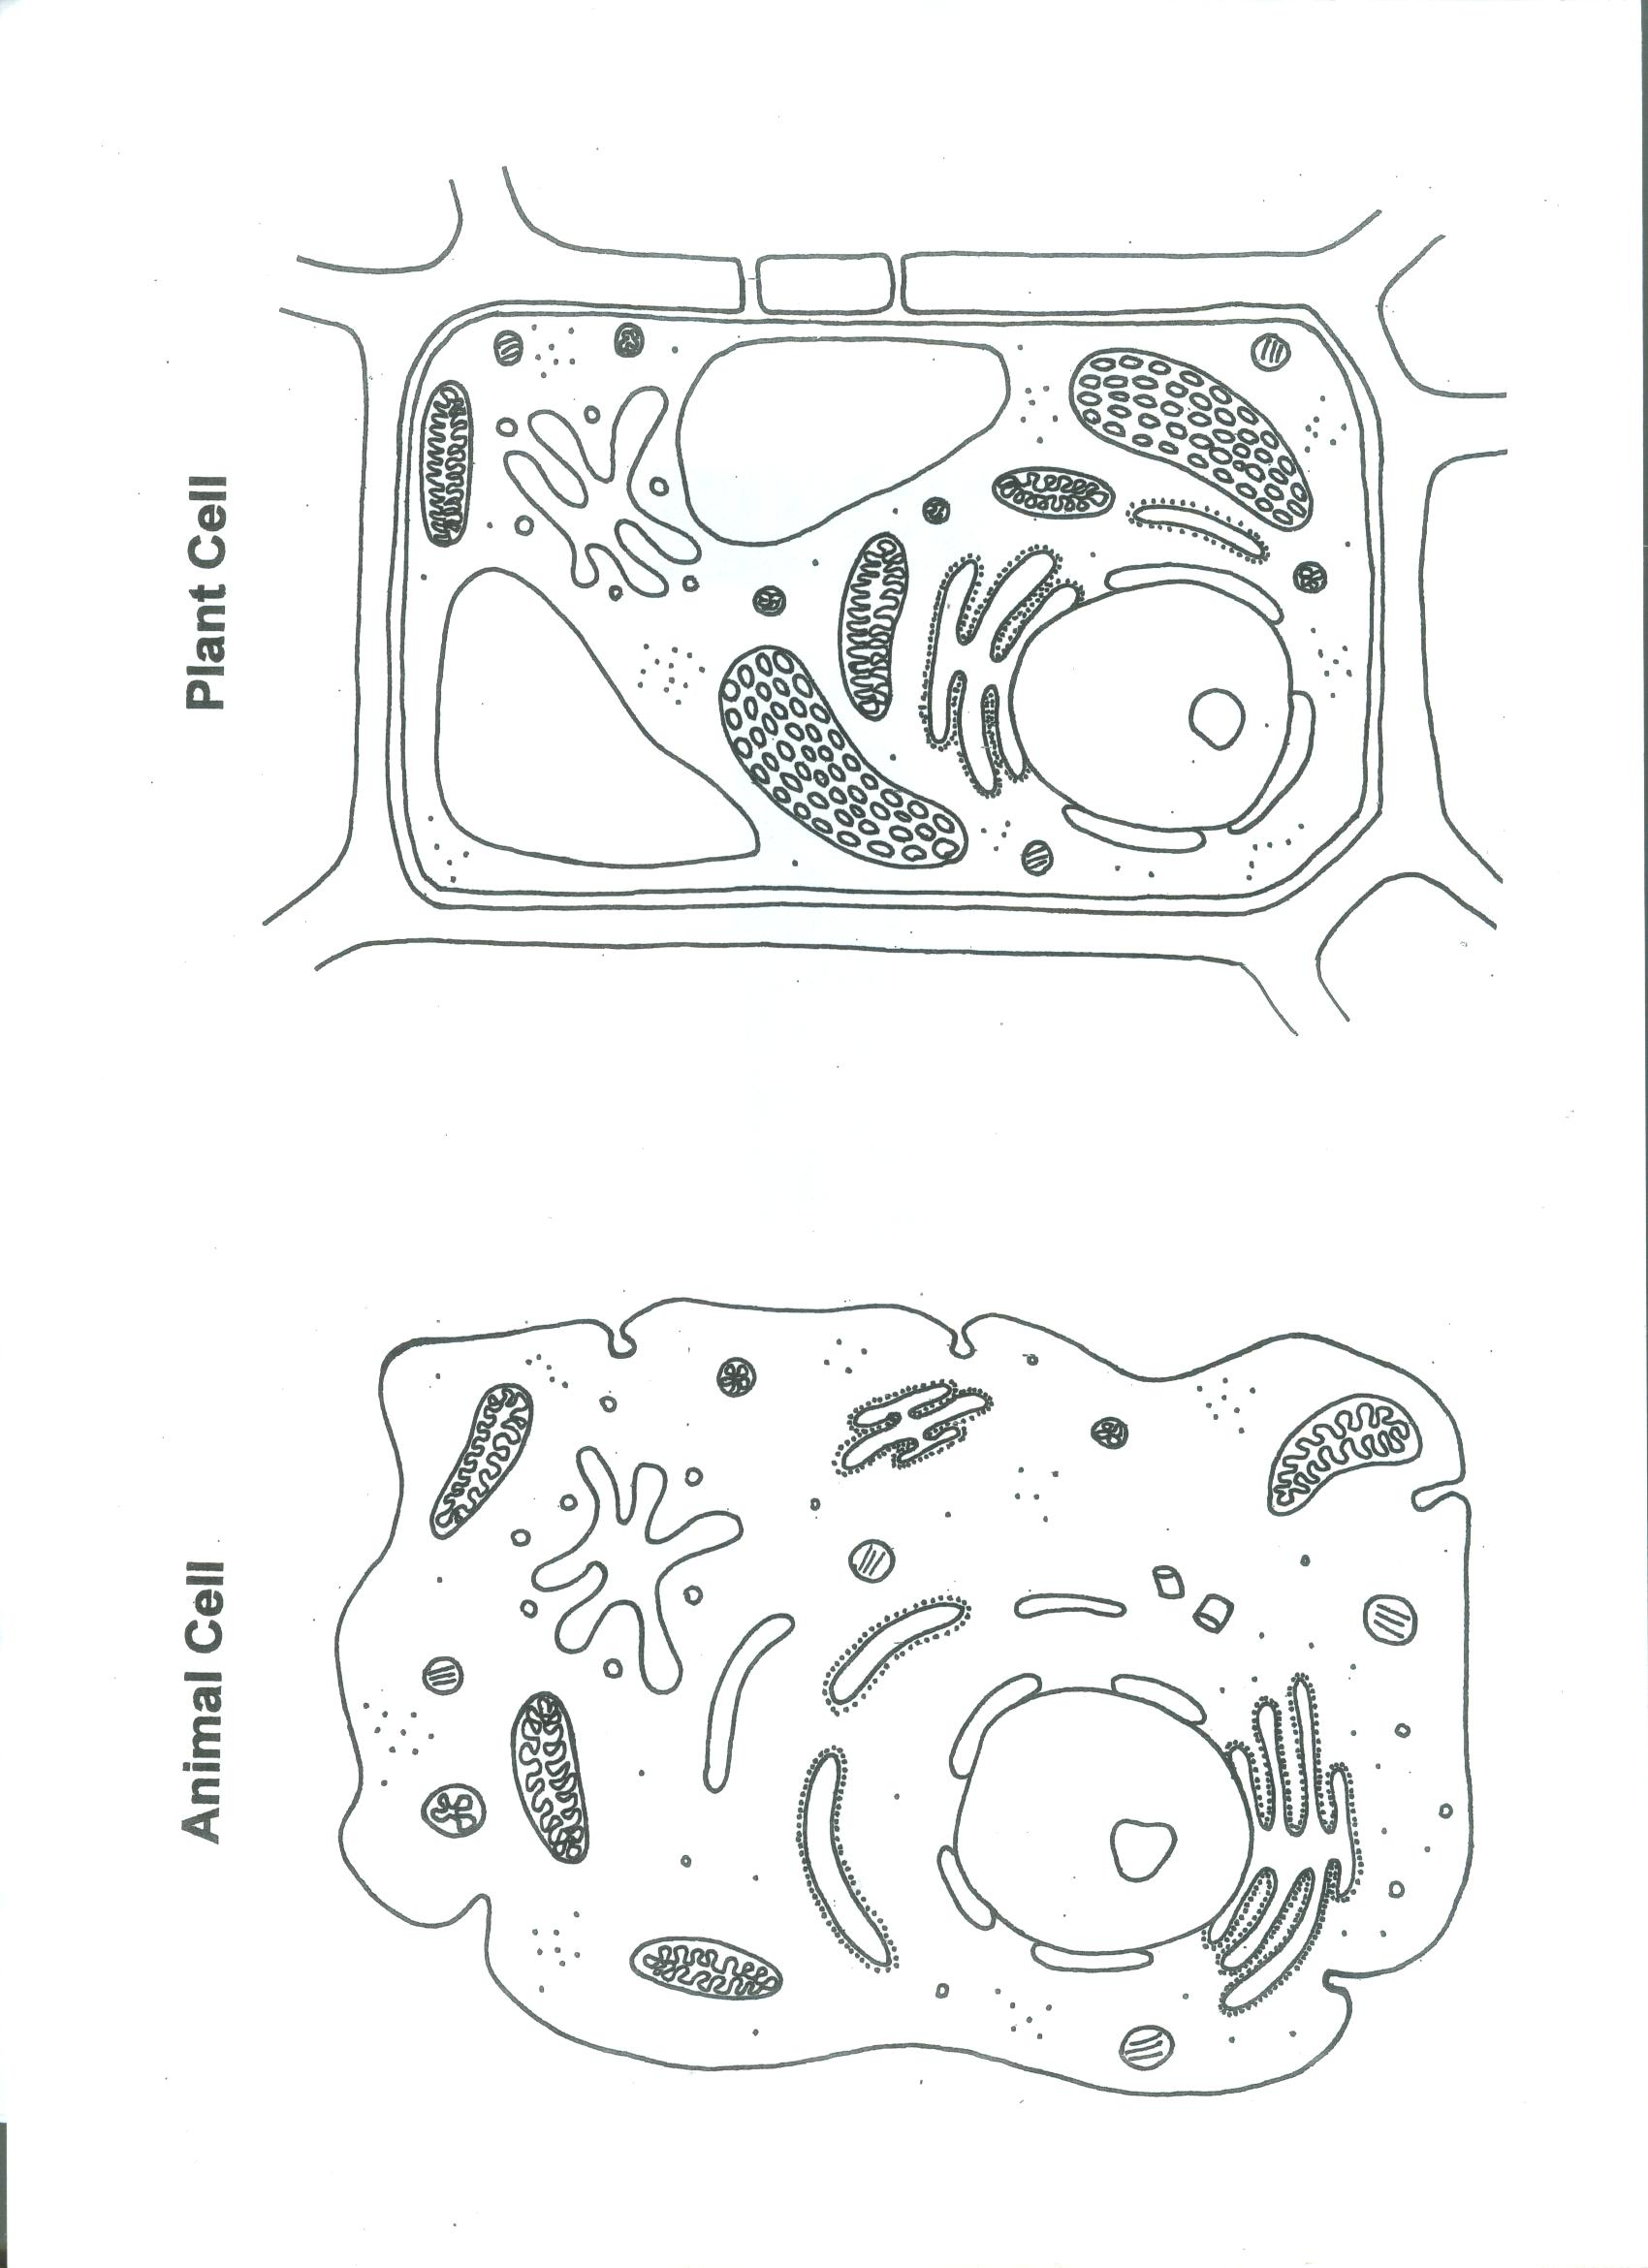 Plant And Animal Cell Diagram Fill In The Blank – Plant and Animal Cell Worksheet